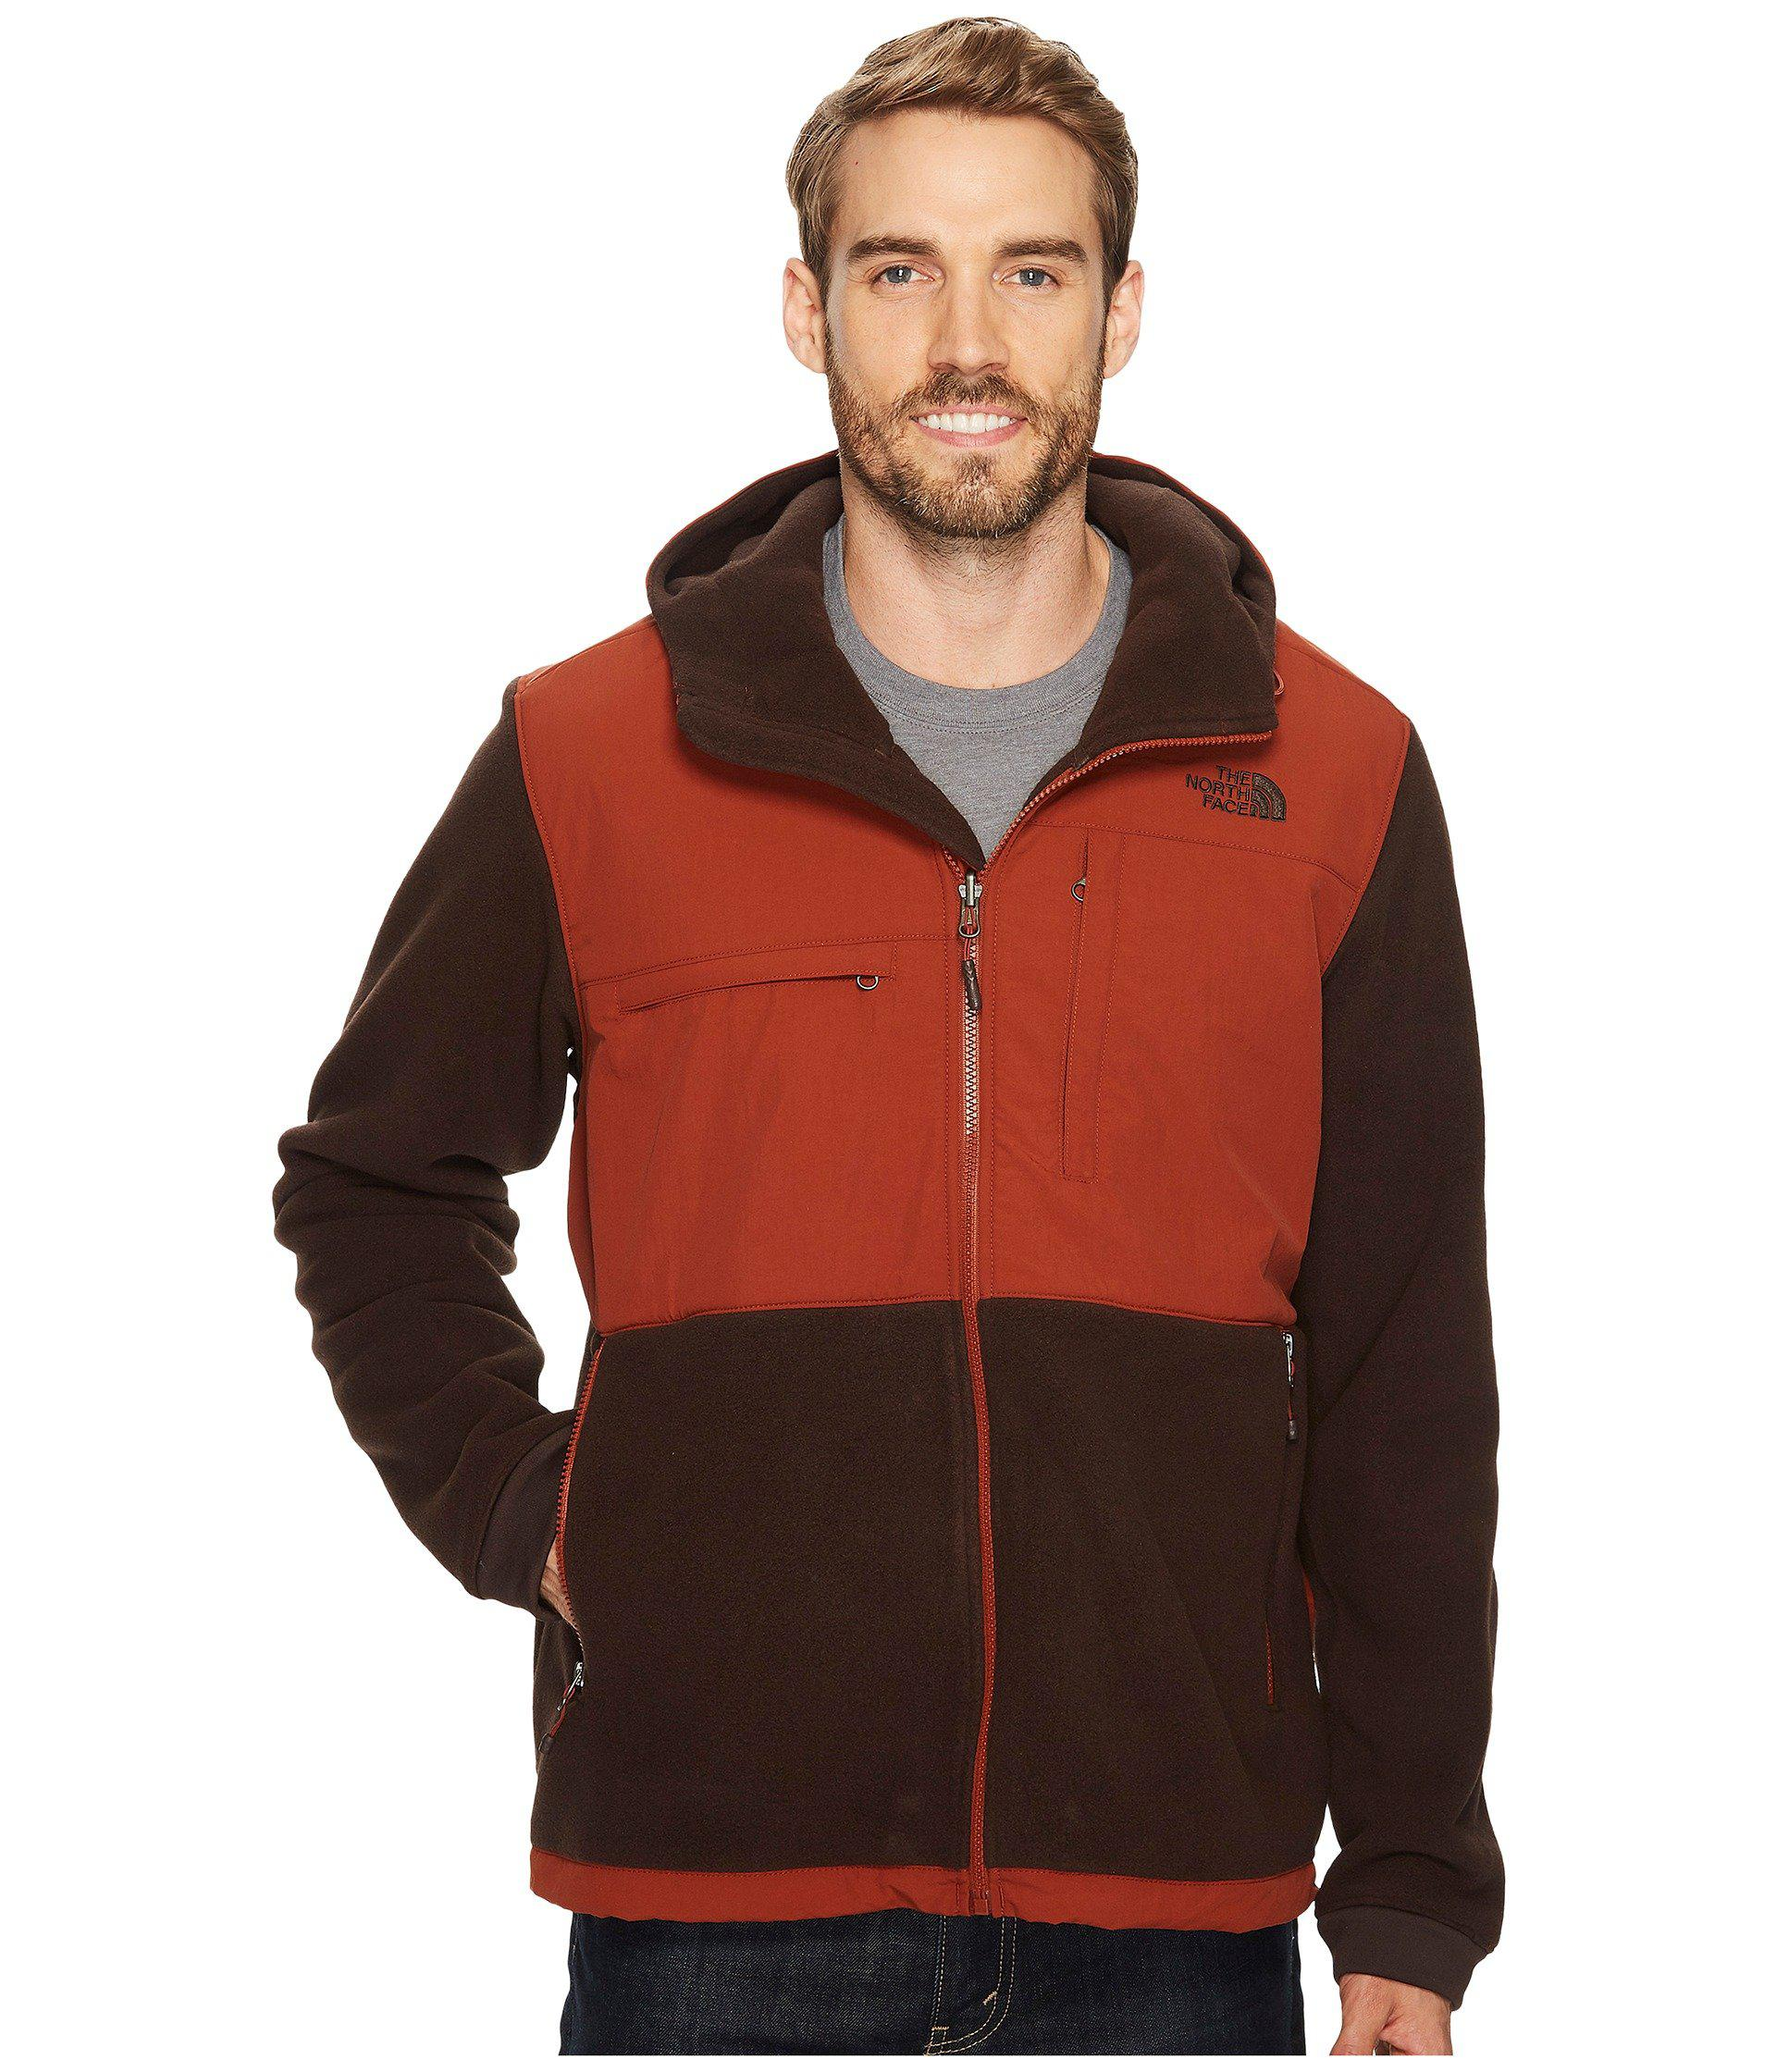 a55812c230d5 Lyst - The North Face Denali 2 Hoodie in Brown for Men - Save 29%